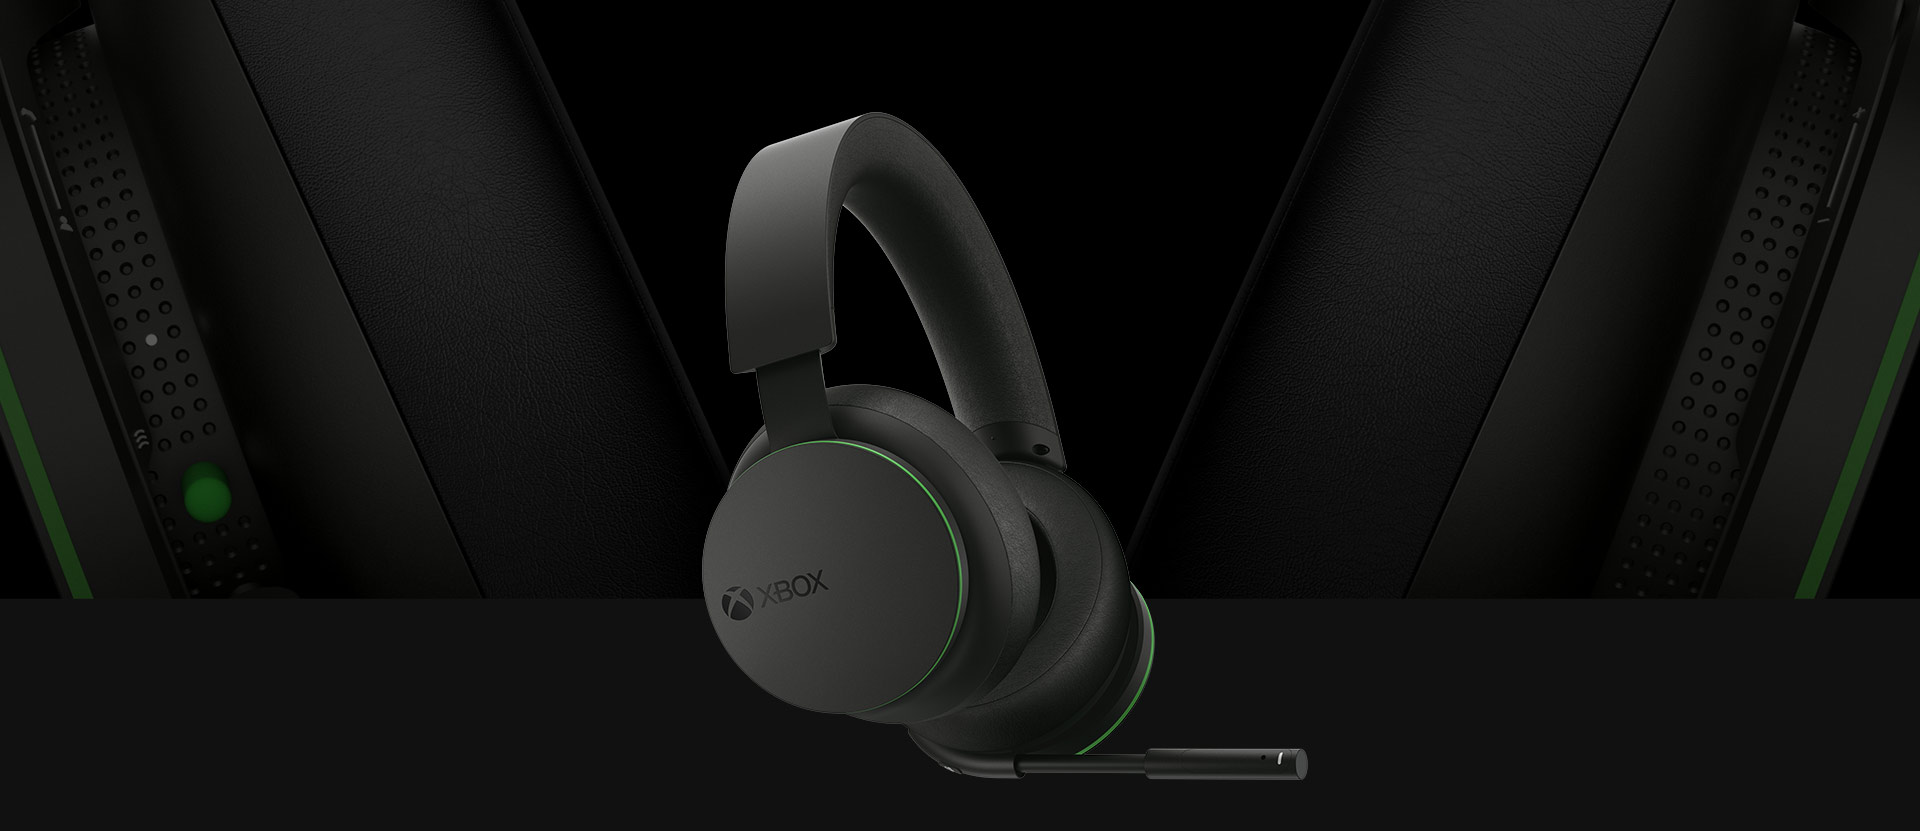 Front angled view of the Xbox Wireless Headset. A larger detailed view of the earcups is pictured behind the headset.